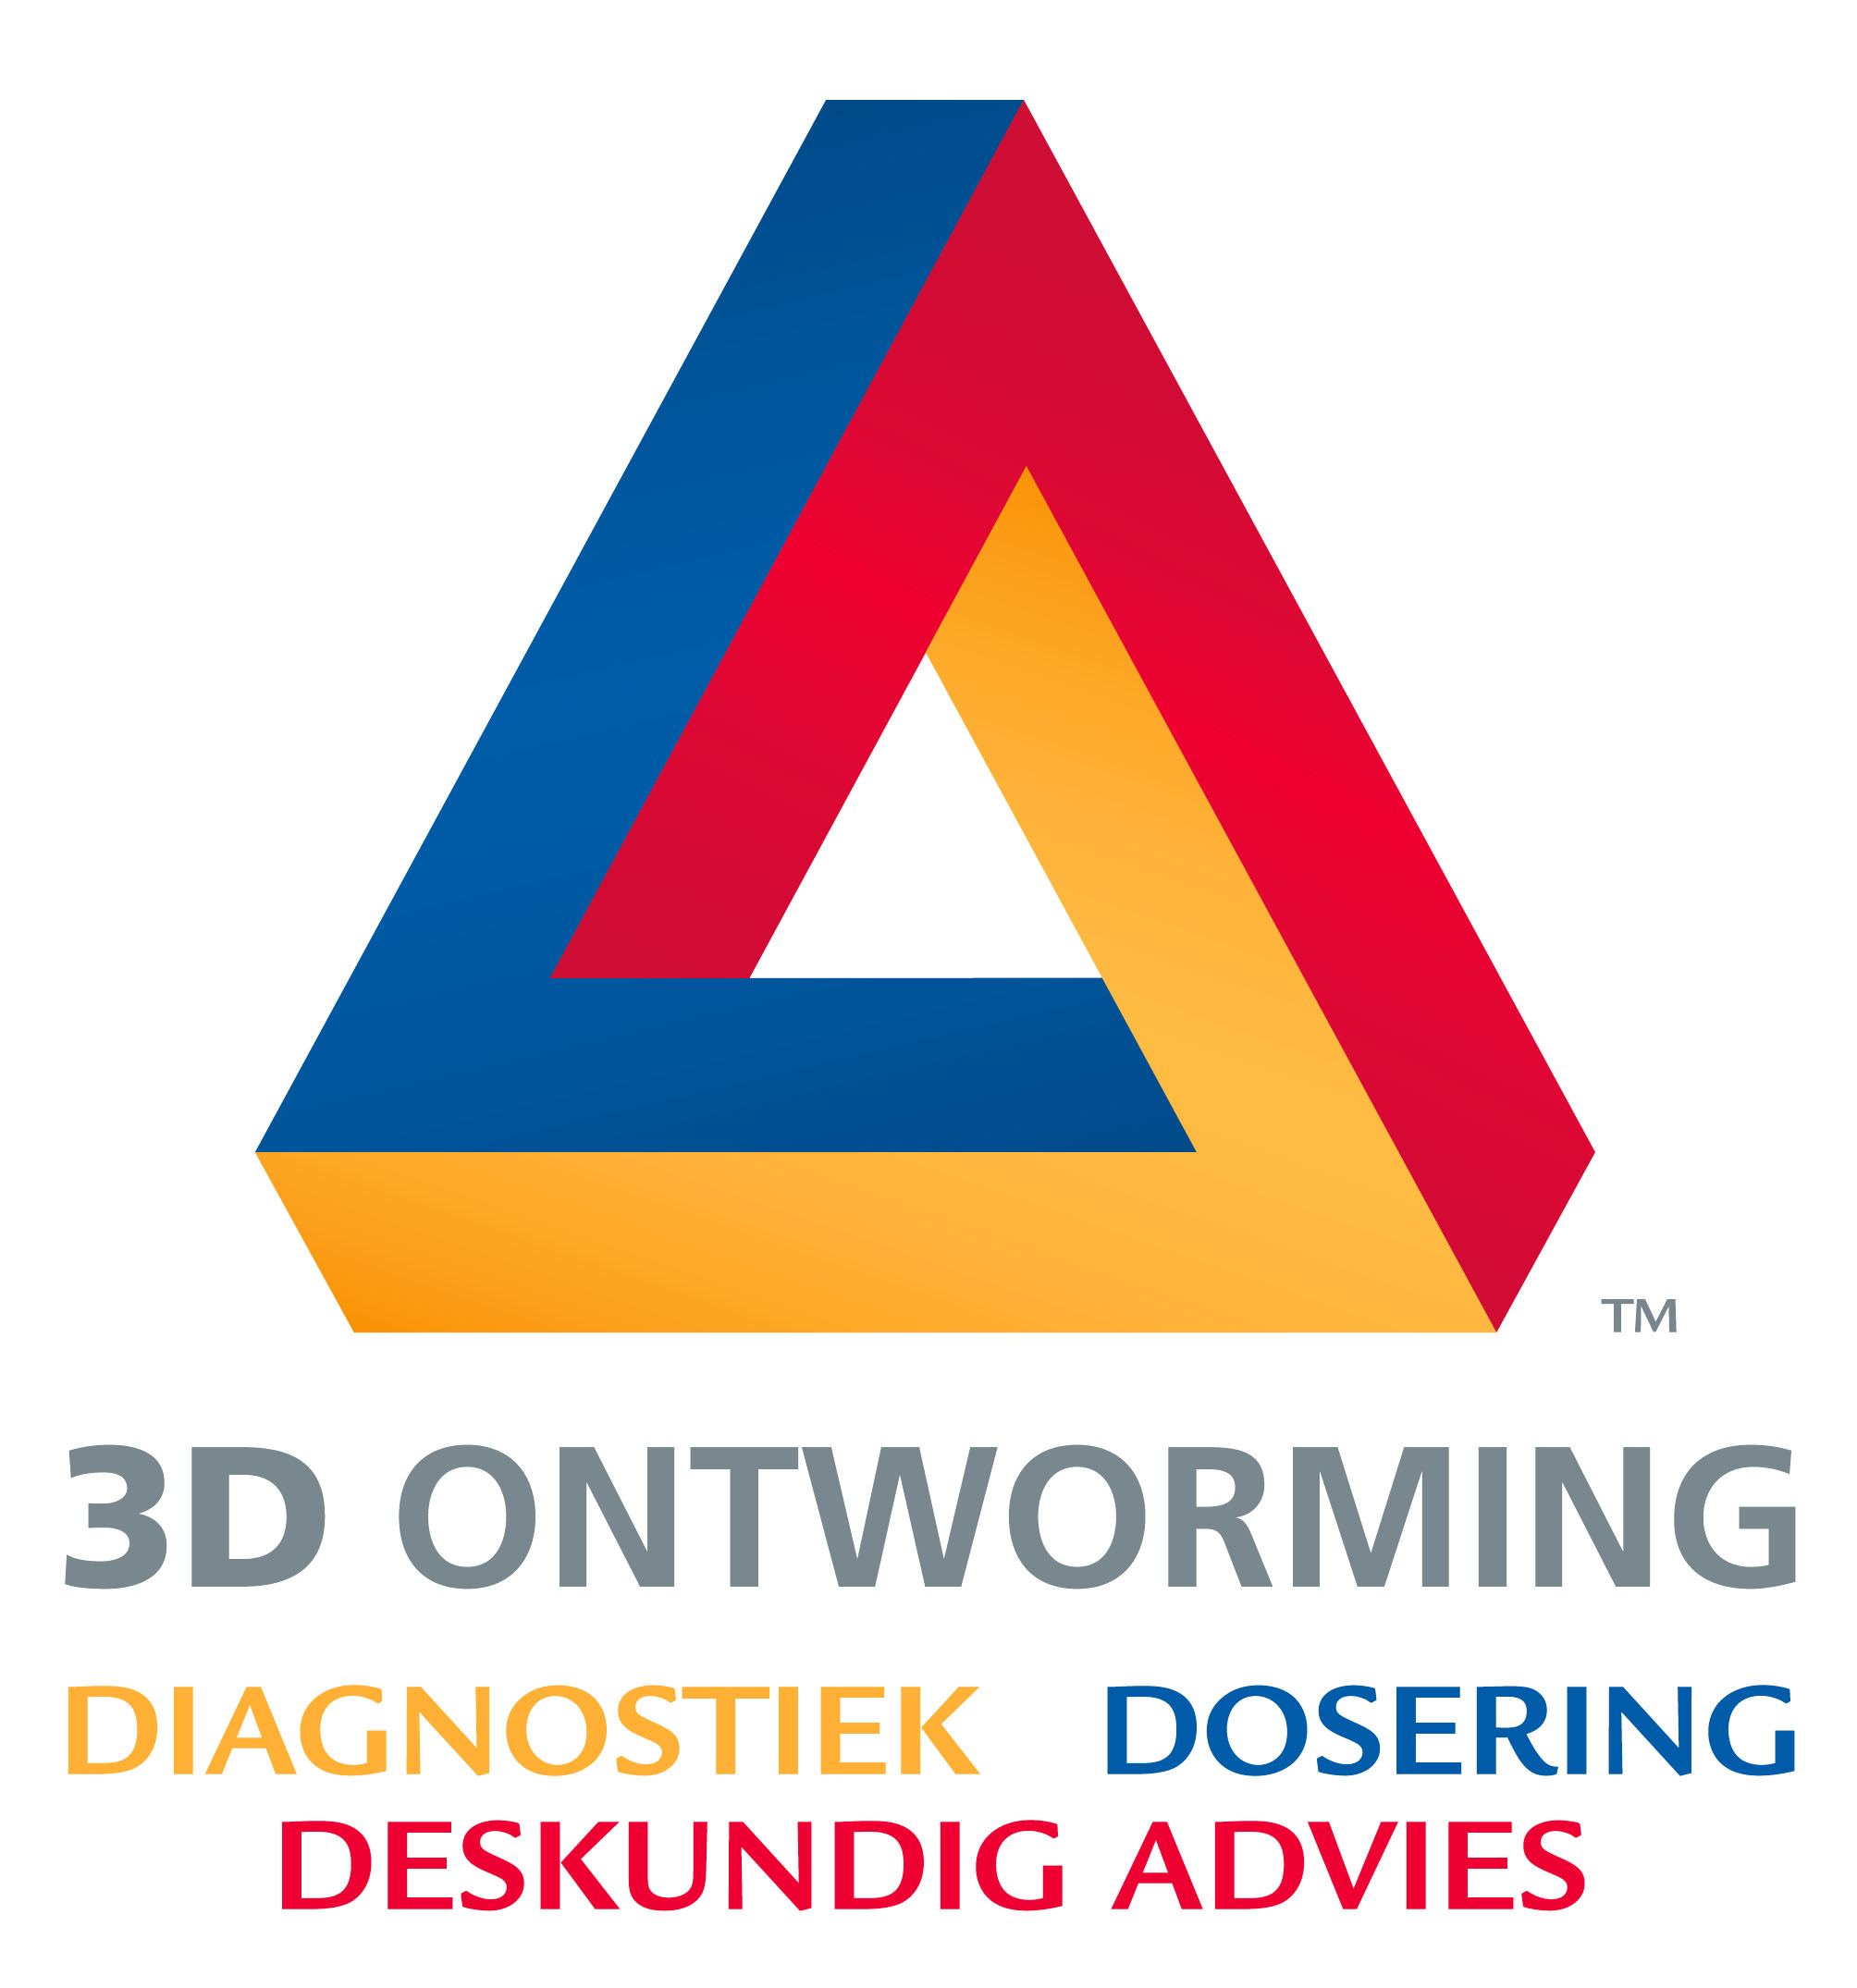 3D ontworming